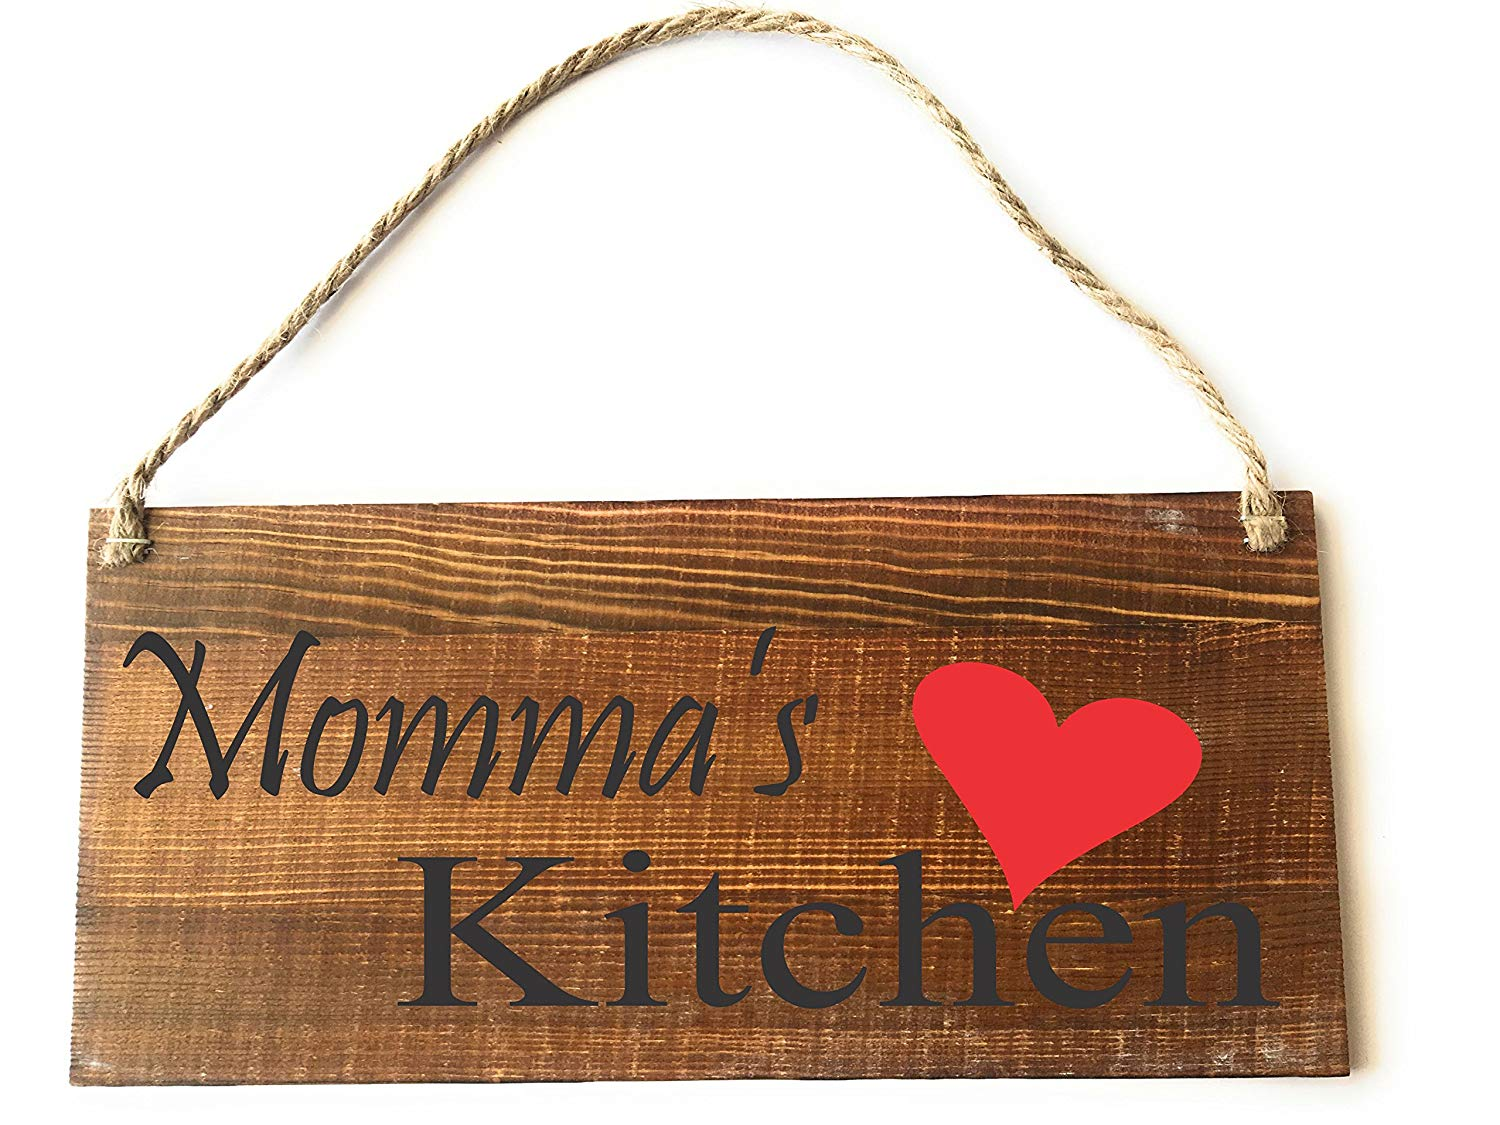 CUSTOM HANDMADE PERSONALIZED SIGNS, MOMMA'S KITCHEN, RUSTIC, COUNTRY WOODEN SIGN, BIRTHDAY GIFT, MOTHER'S DAY GIFT, by Heartland Country Decor